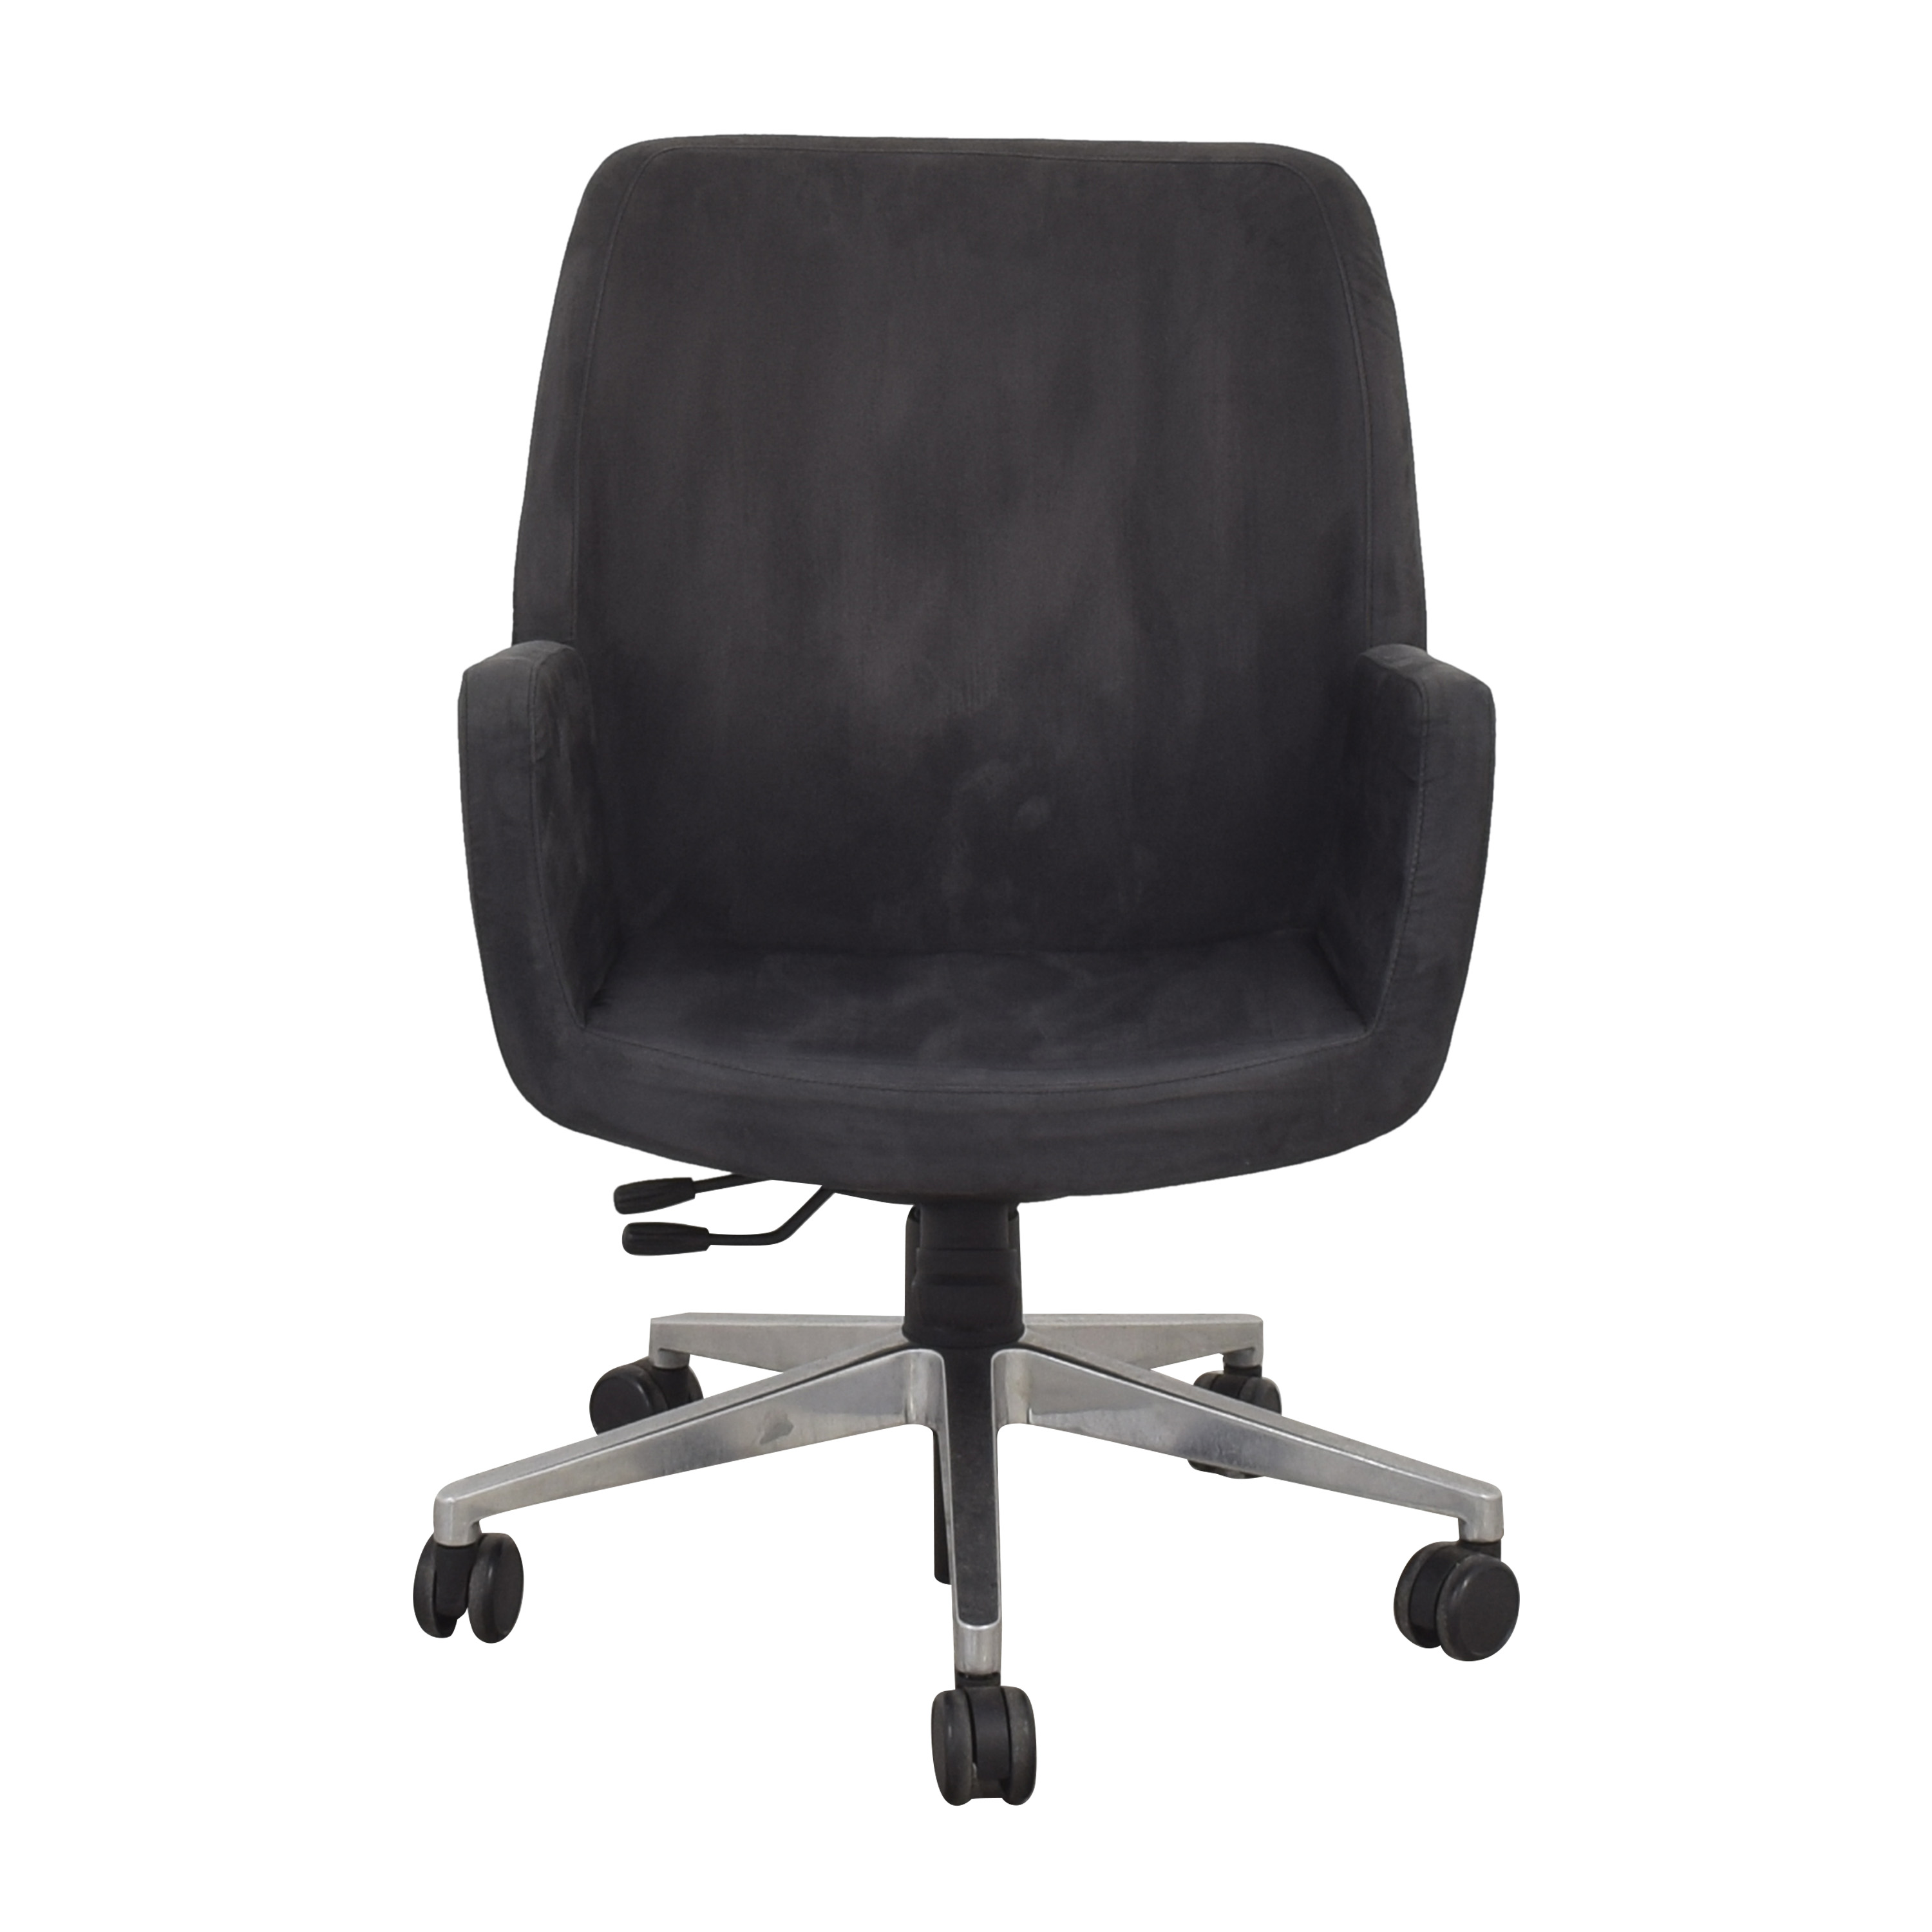 Steelcase Steelcase Coalesse Bindu Guest Chair nj